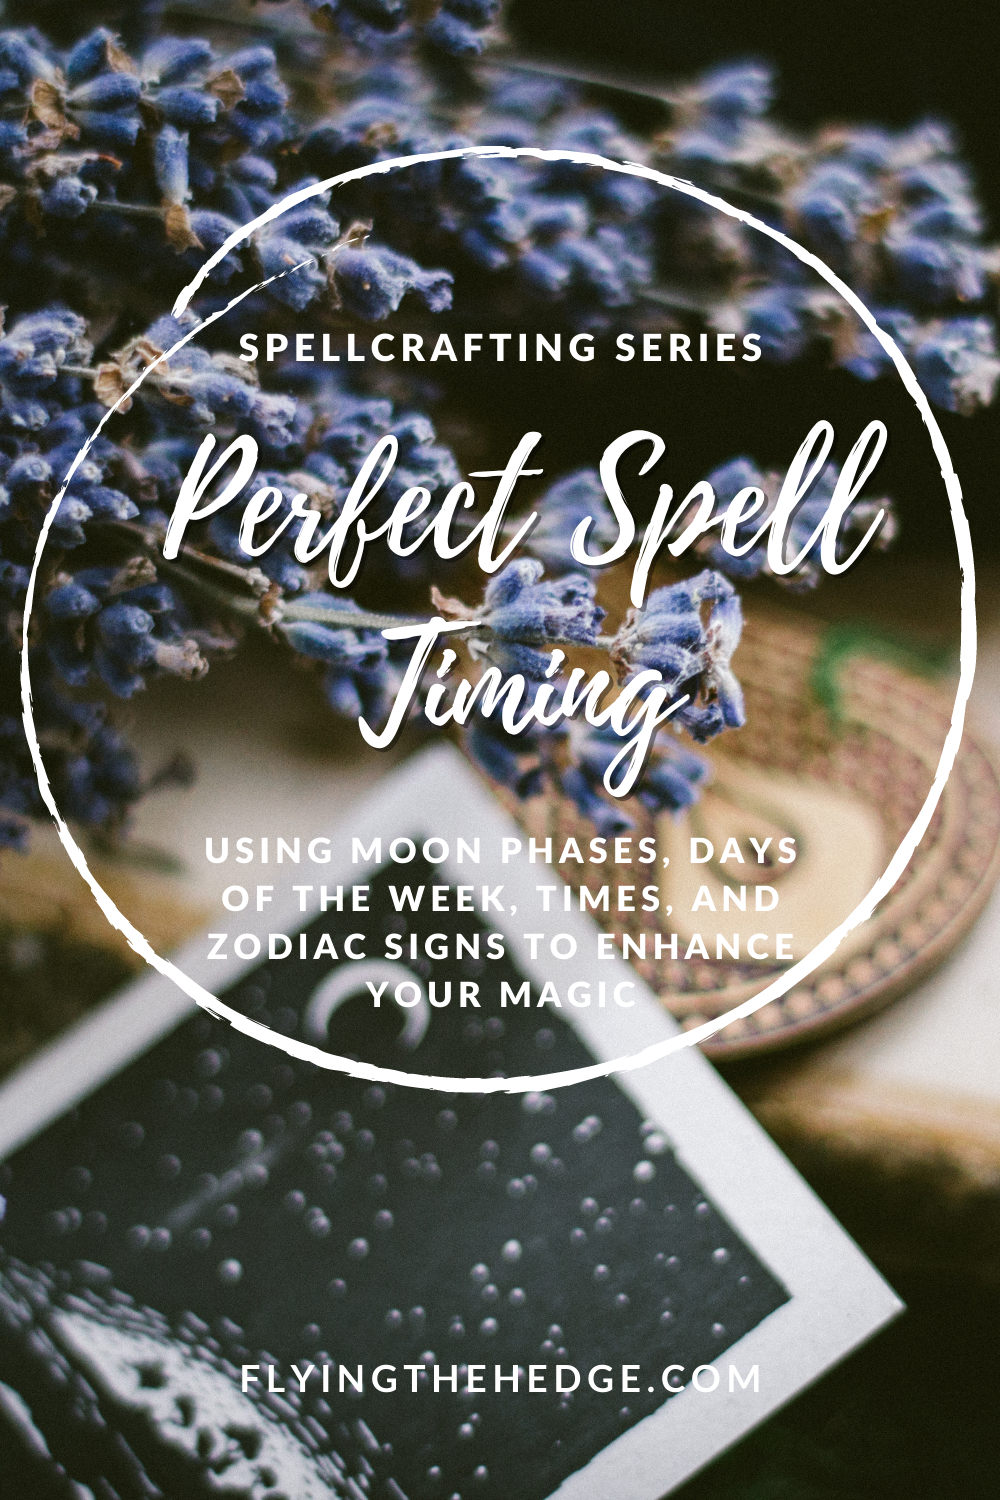 spell timing, zodiac signs, moon phases, spellcrafting, spells, rituals, witchcraft, pagan, neopagan, wicca, wiccan, witchcraft, spell writing, magick, magic